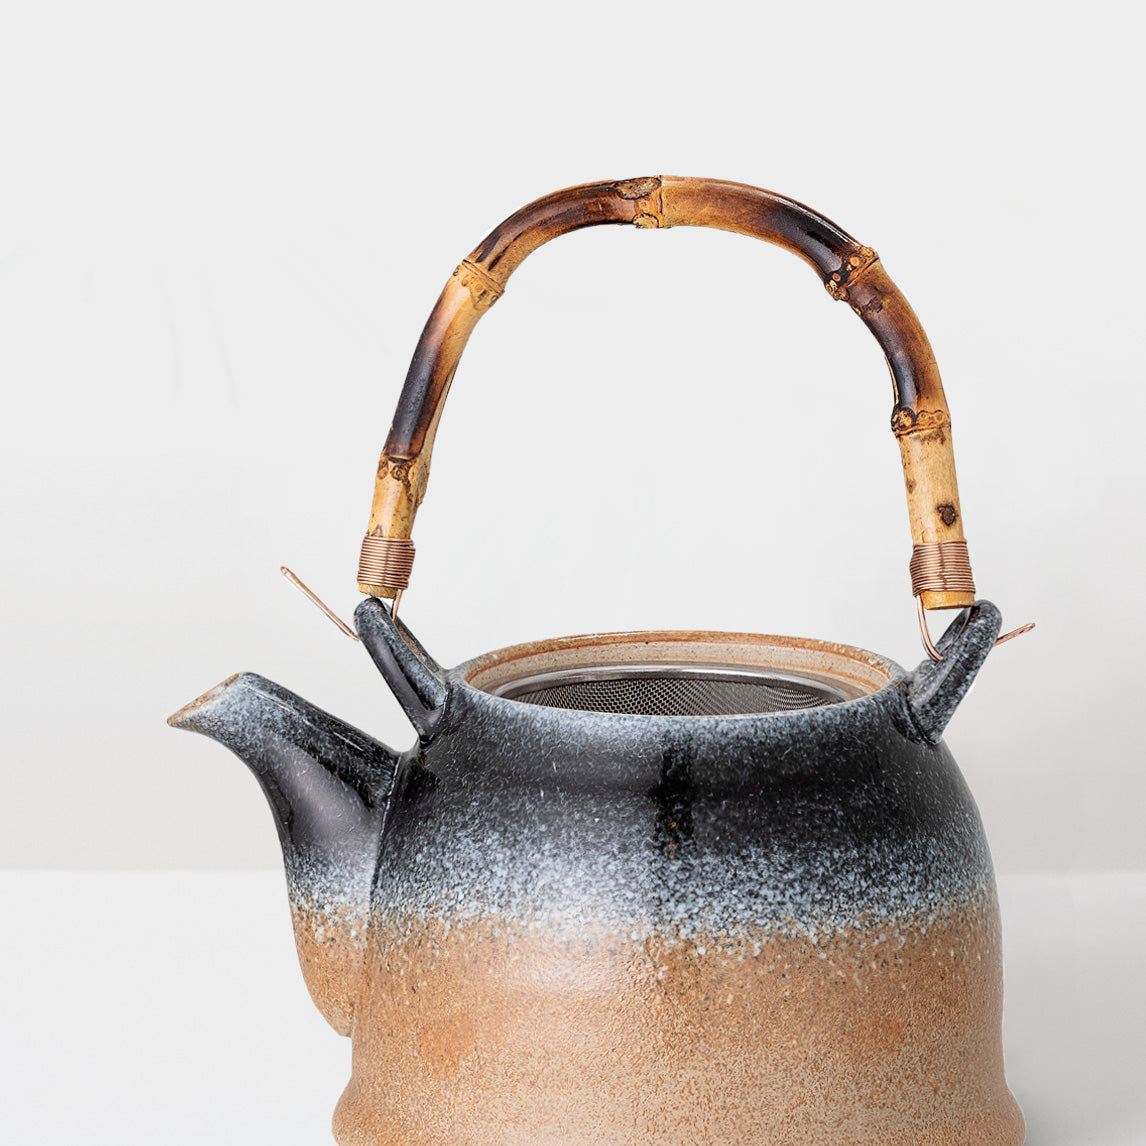 Handcrafted earth glazed Teapot with strainer